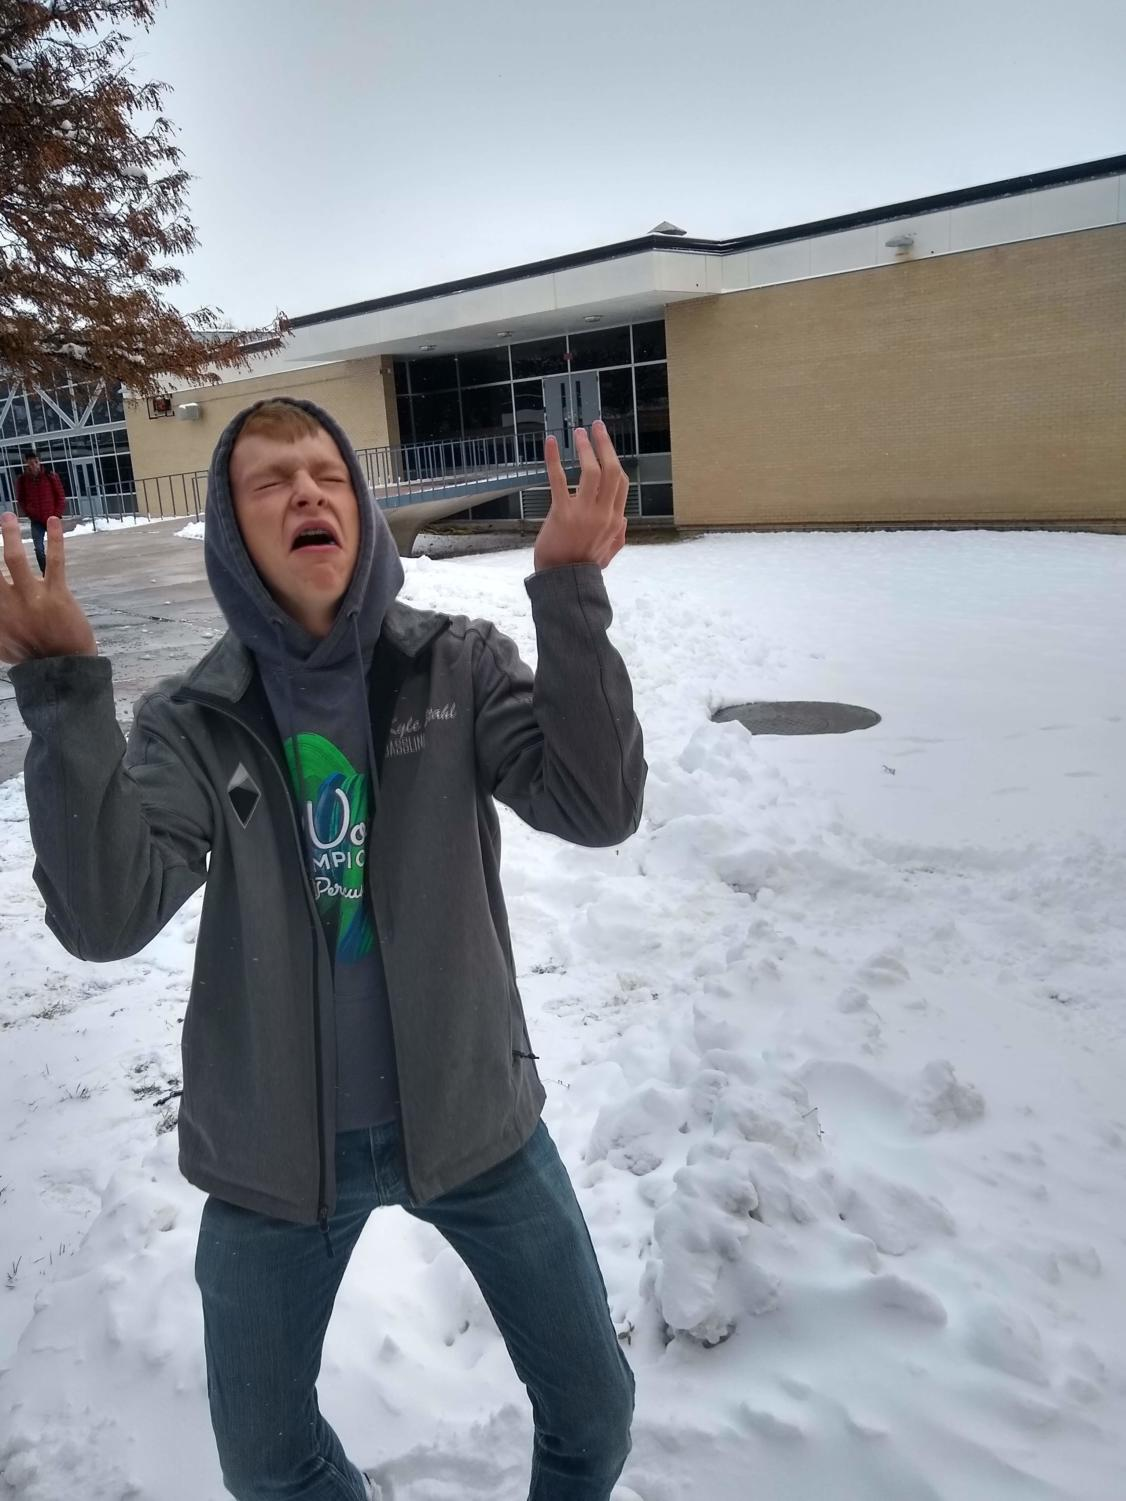 Junior Kyle Stahl grieves in the aftermath of the huge snowstorm days before his favorite holiday, Halloween.